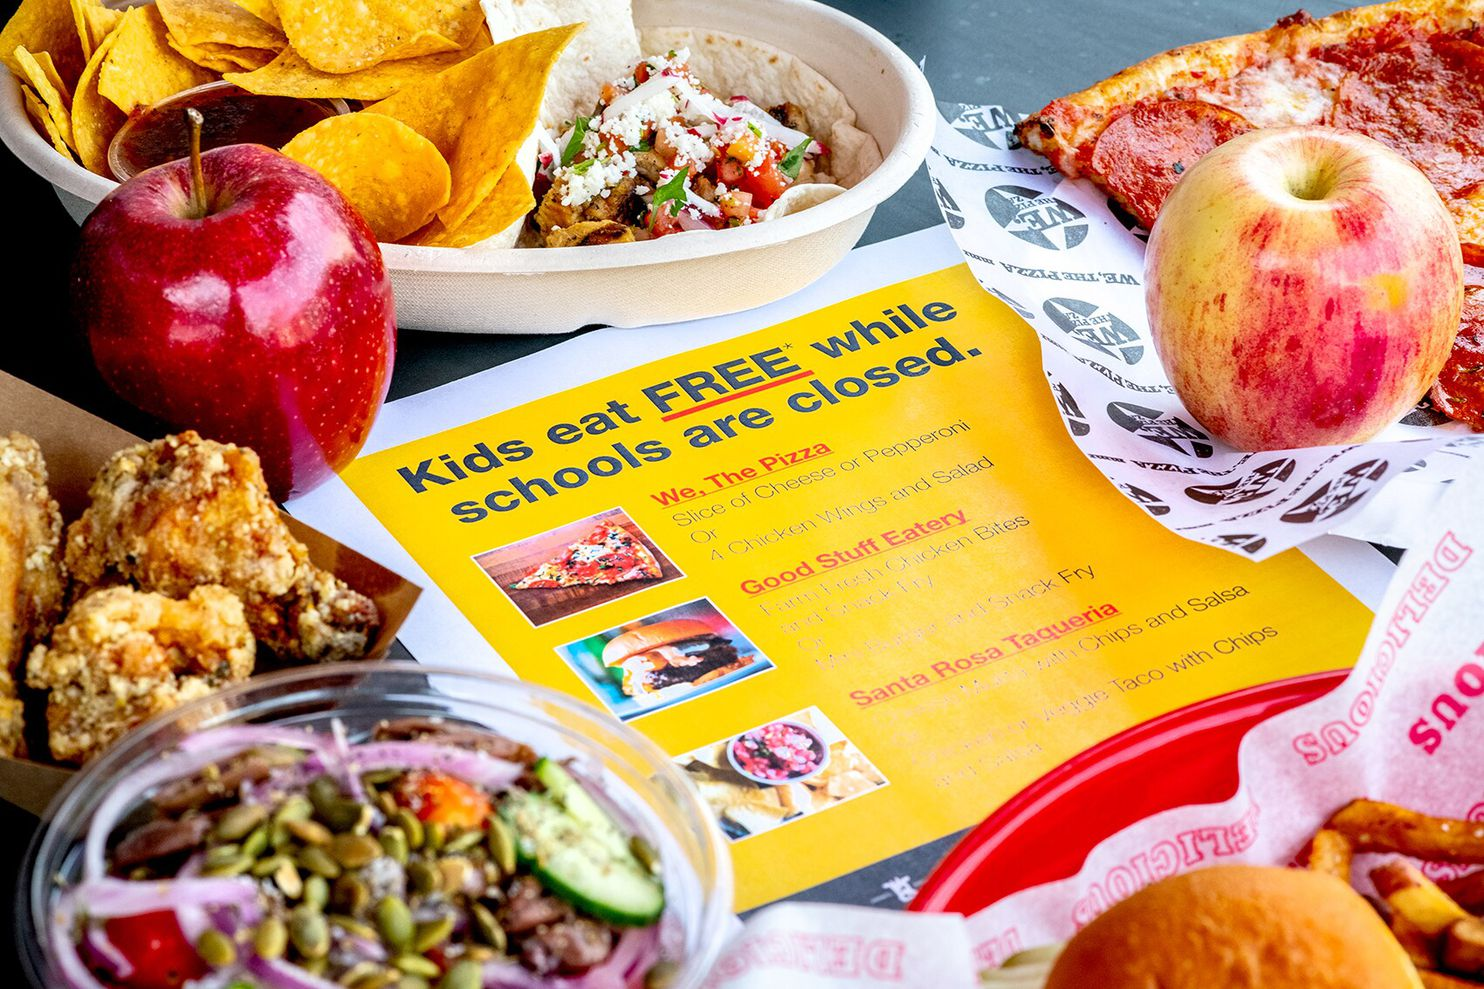 Kids eat FREE while schools are closed